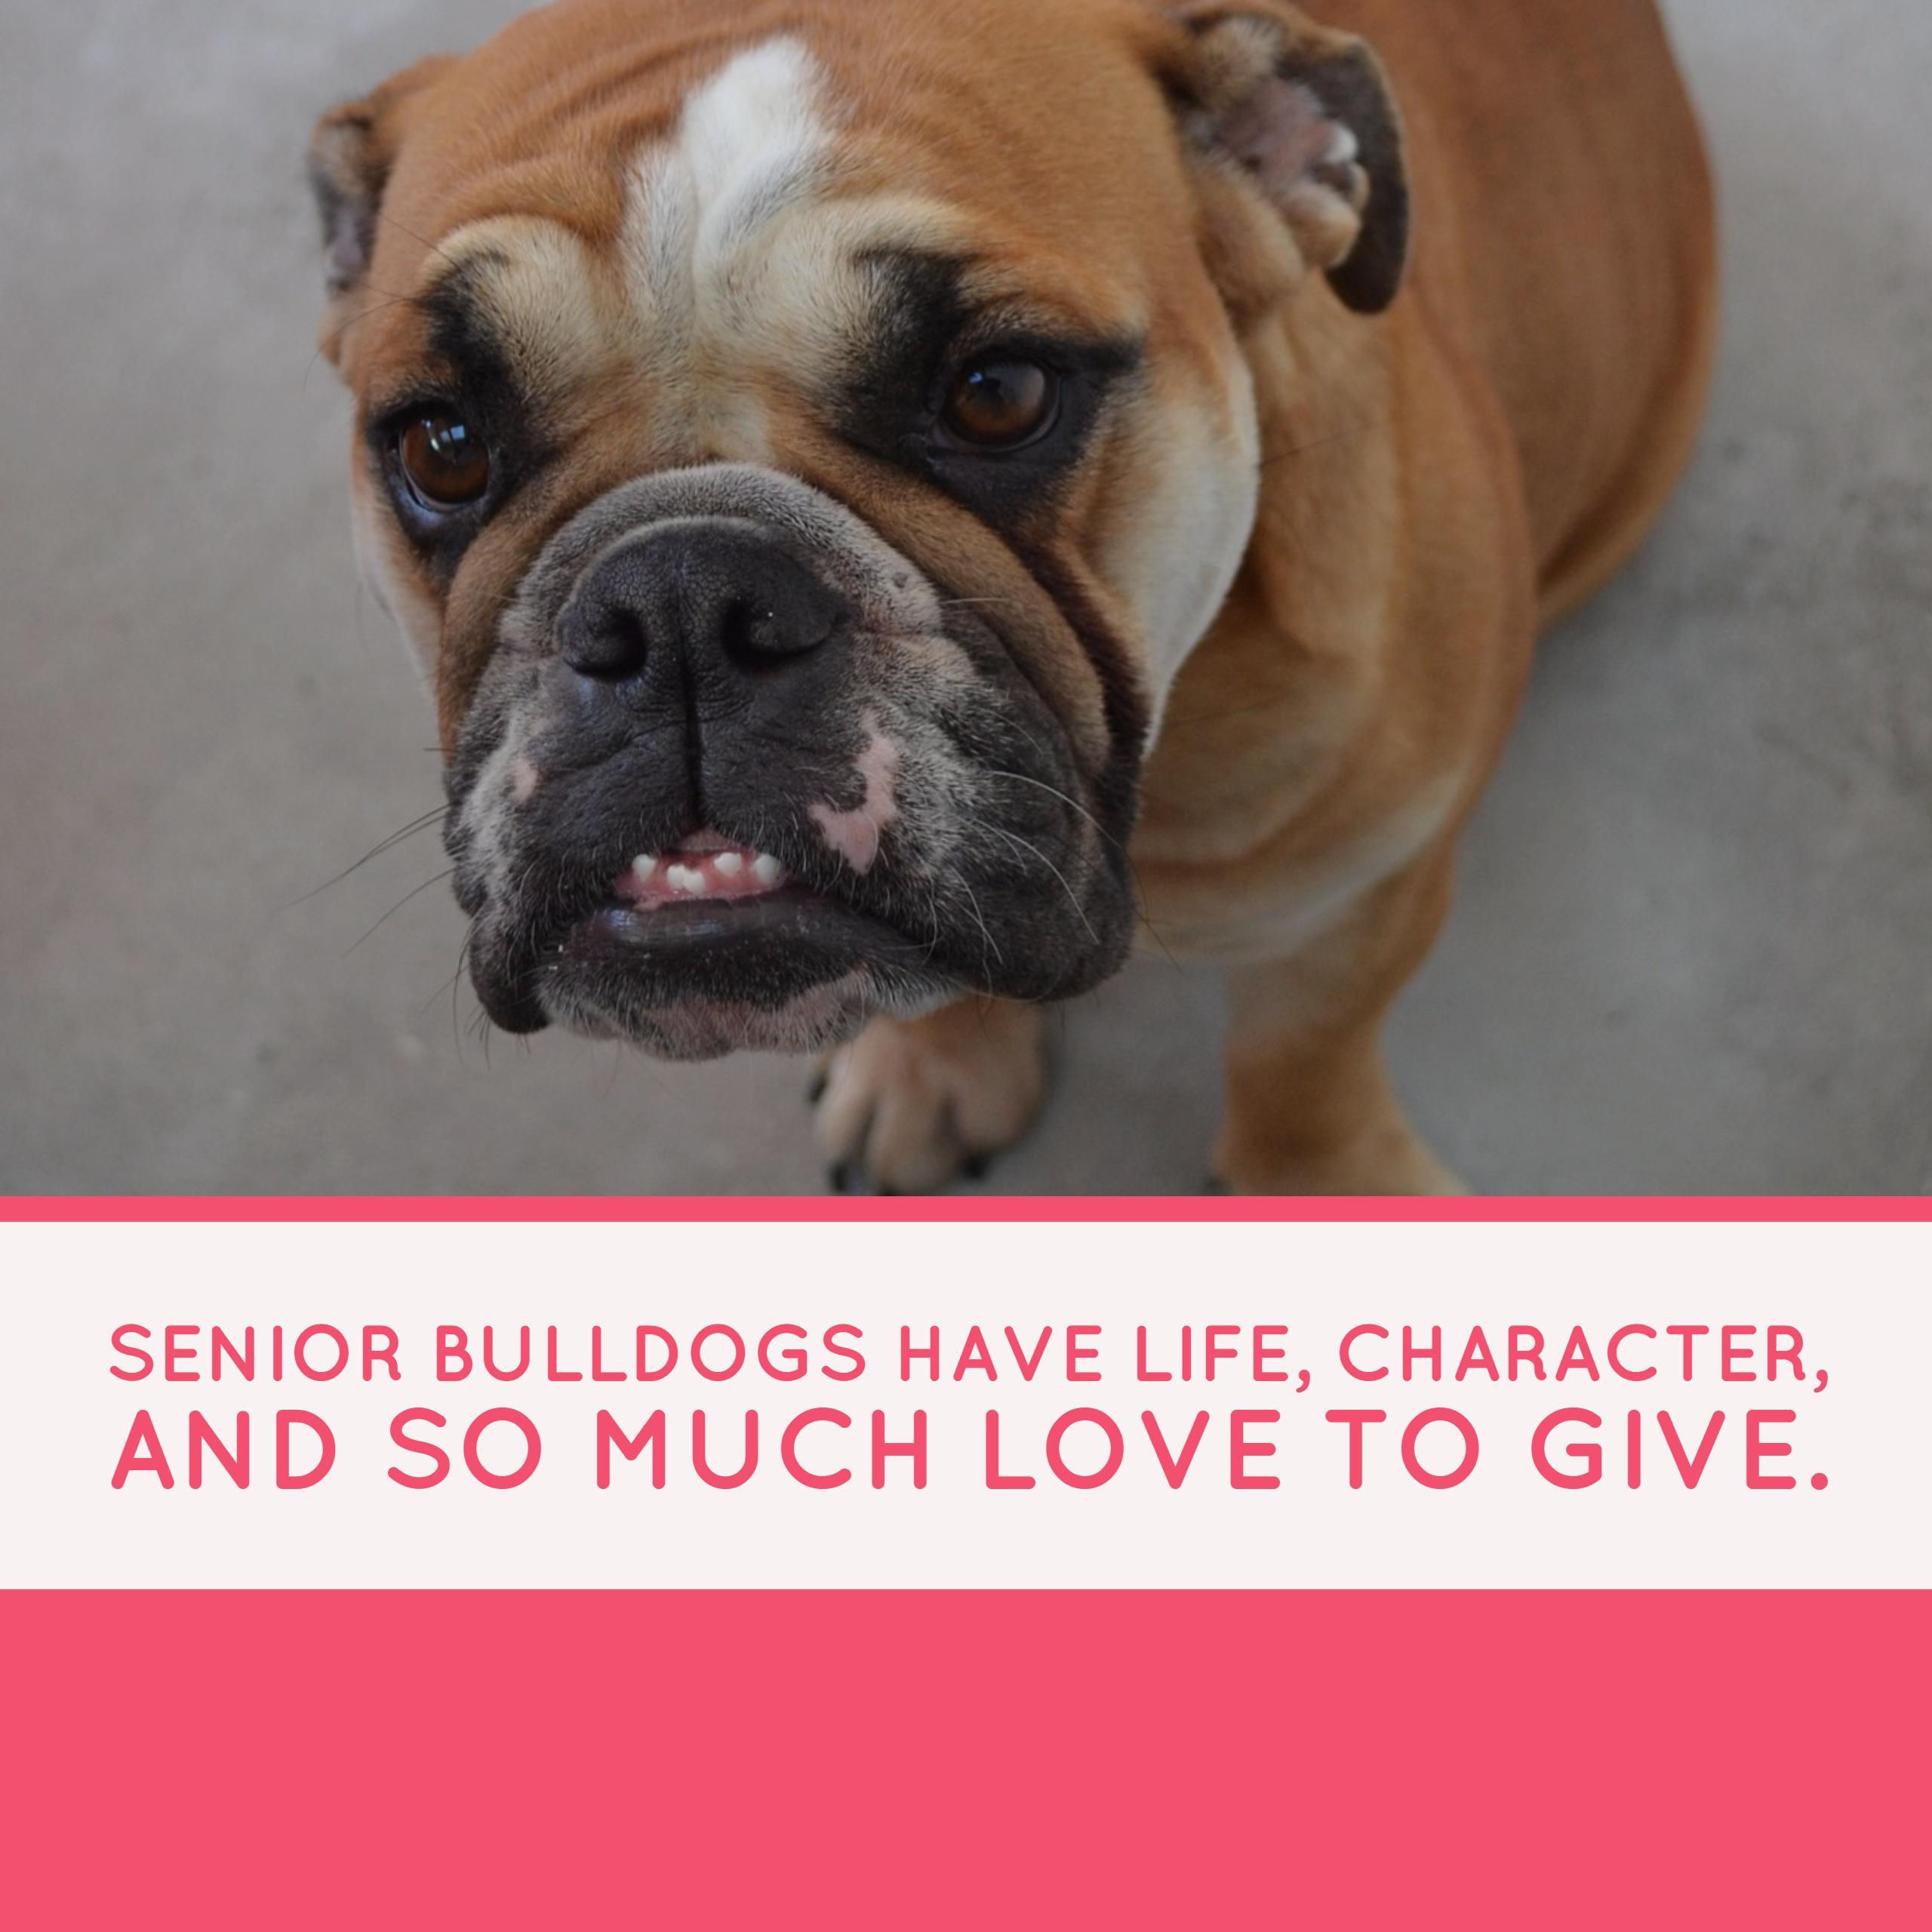 Senior Bulldogs need love too.